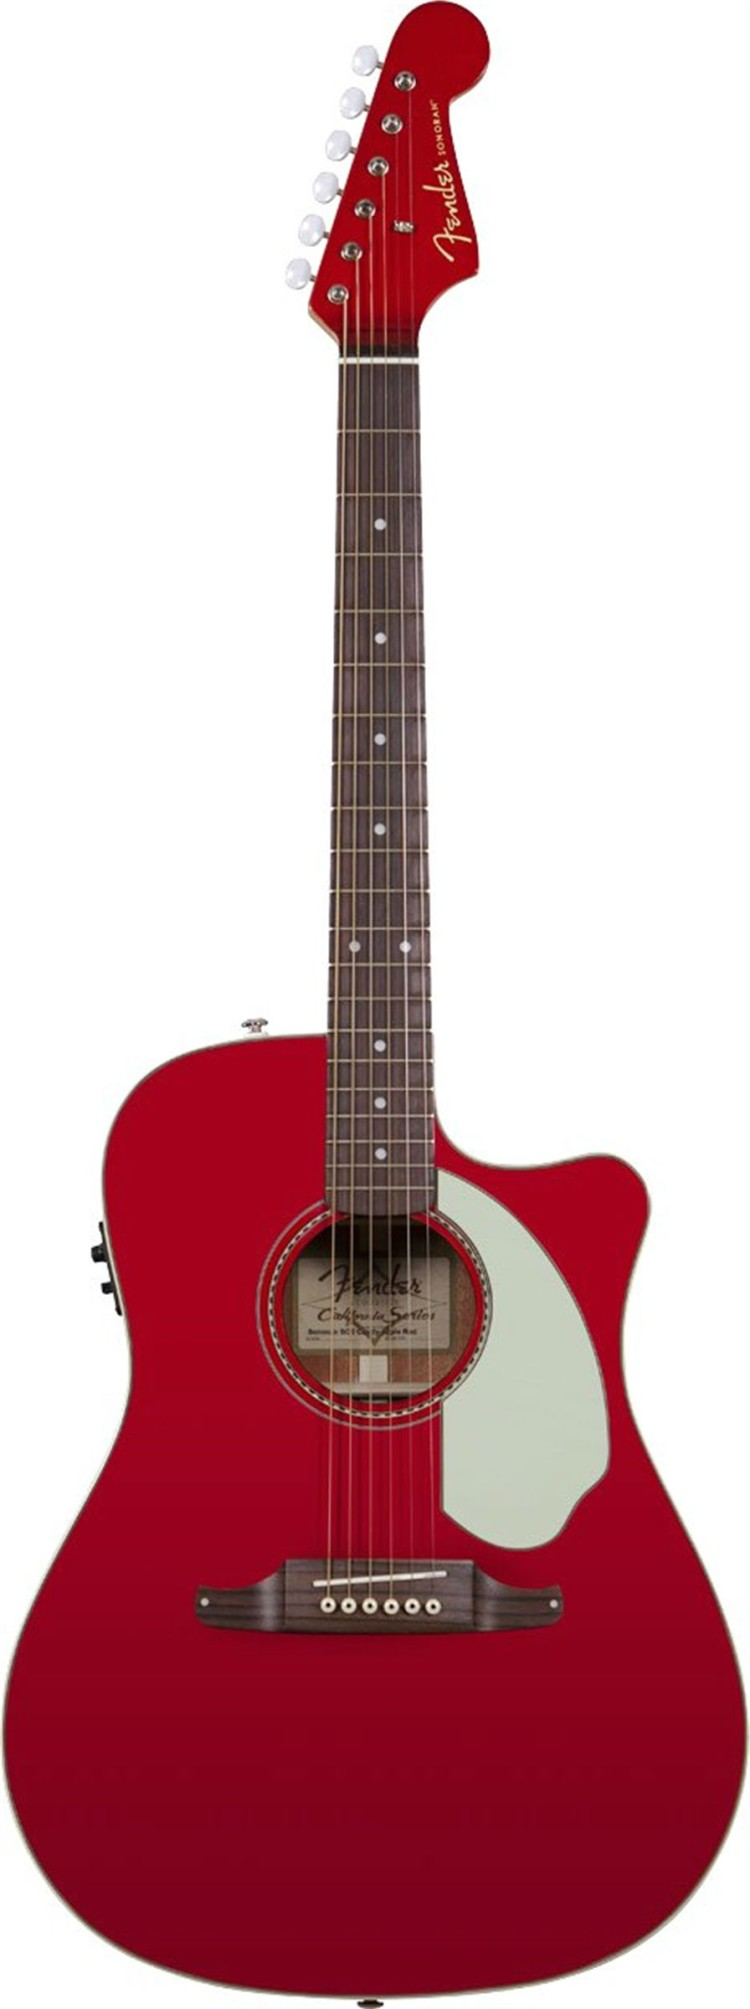 FENDER SONORAN SCE CANDY APPLE RED WITH MATCHING HEADSTOCK Электро-акустическая гитара, цвет красный